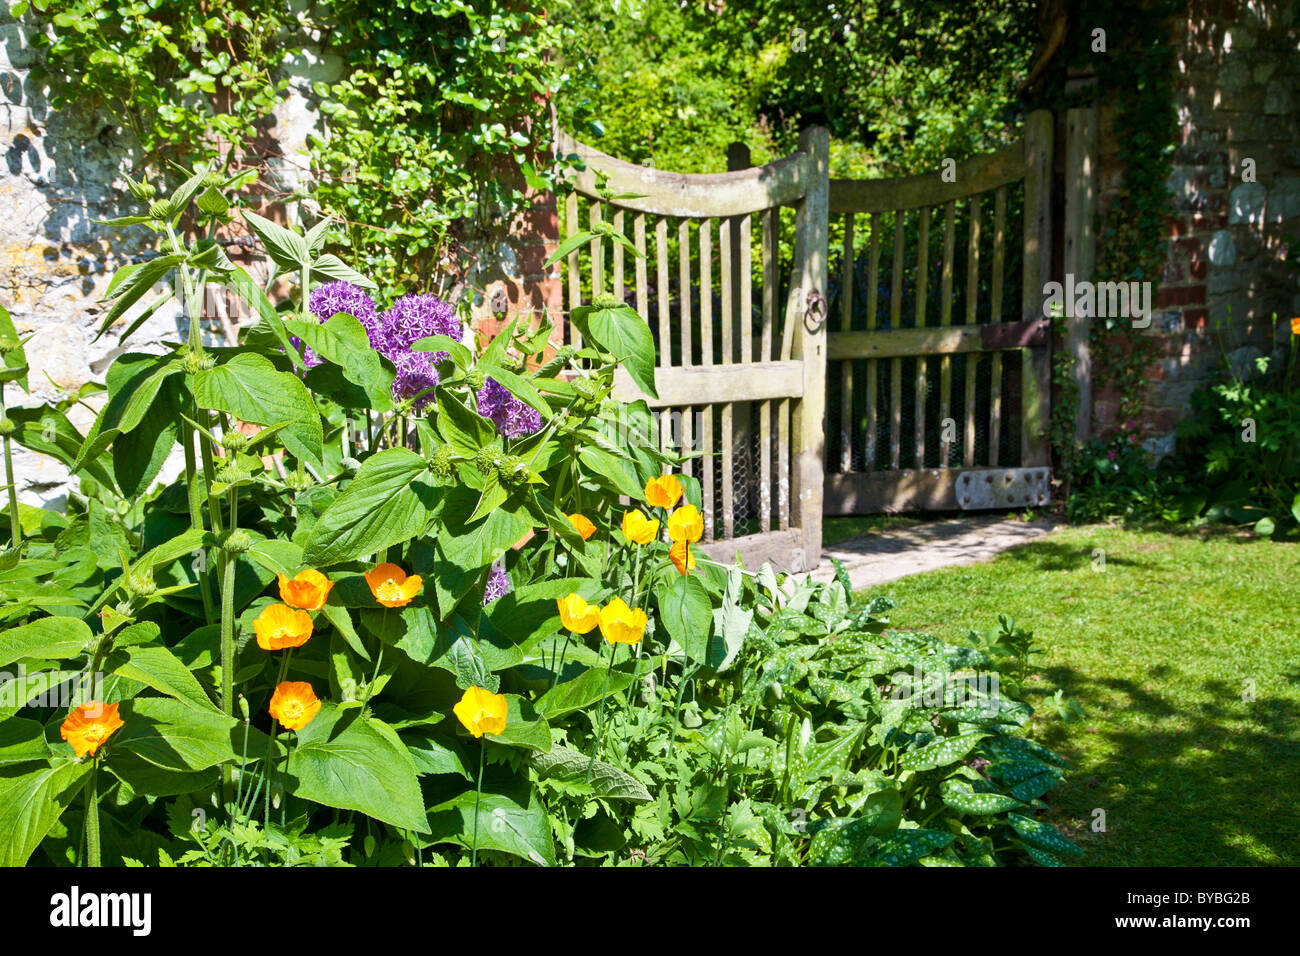 An Open Wooden Garden Gate In An English Country Garden In Summer With  Californian Poppies And